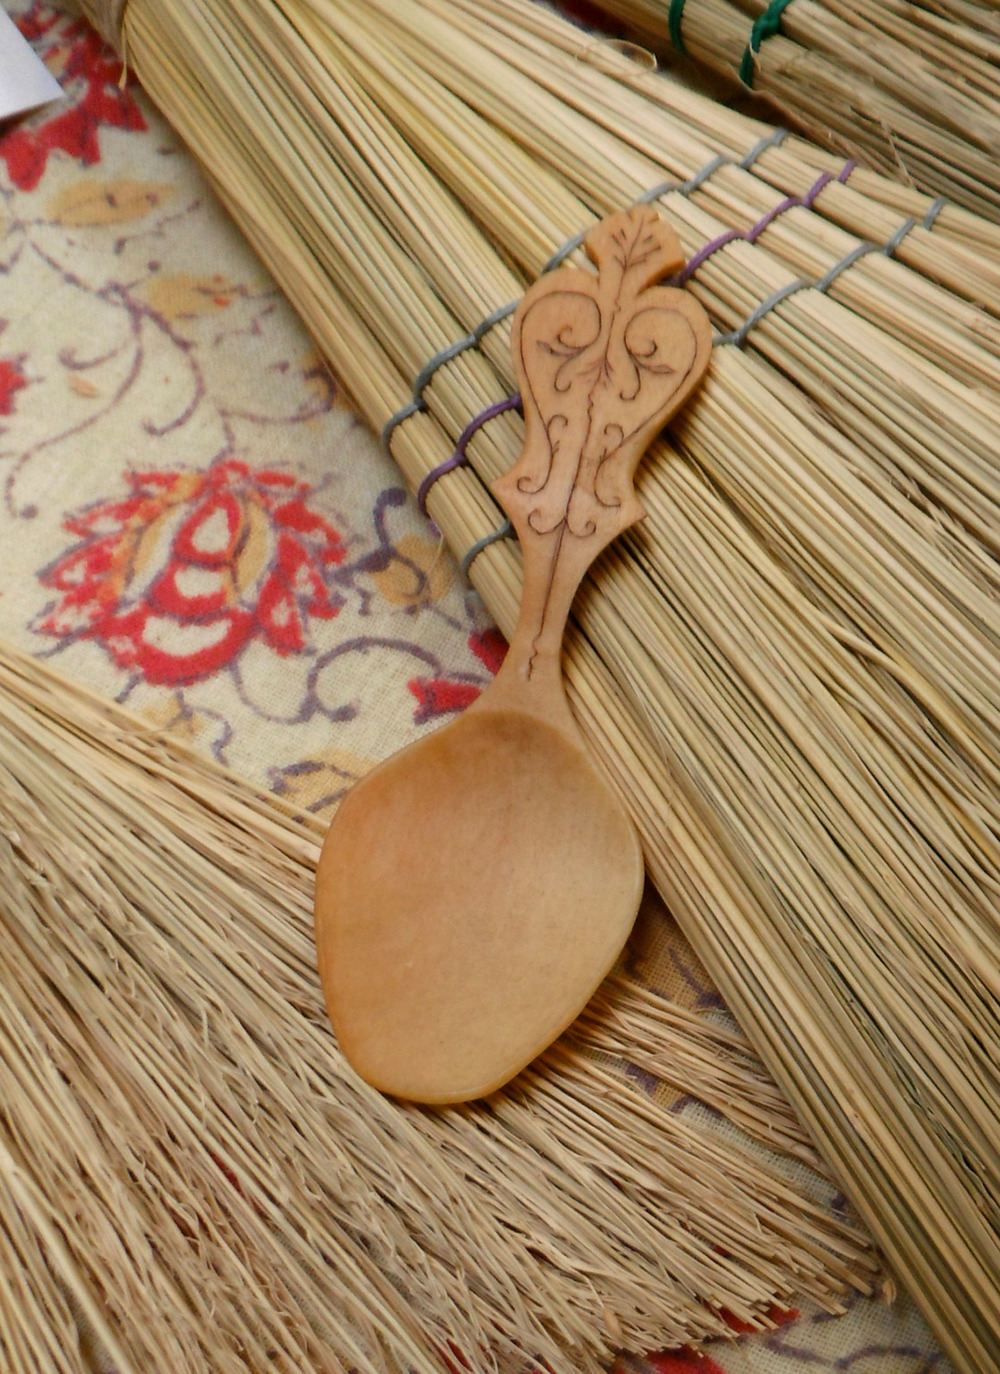 One of Dan's spoons and detail shot of Saga's whisk brooms